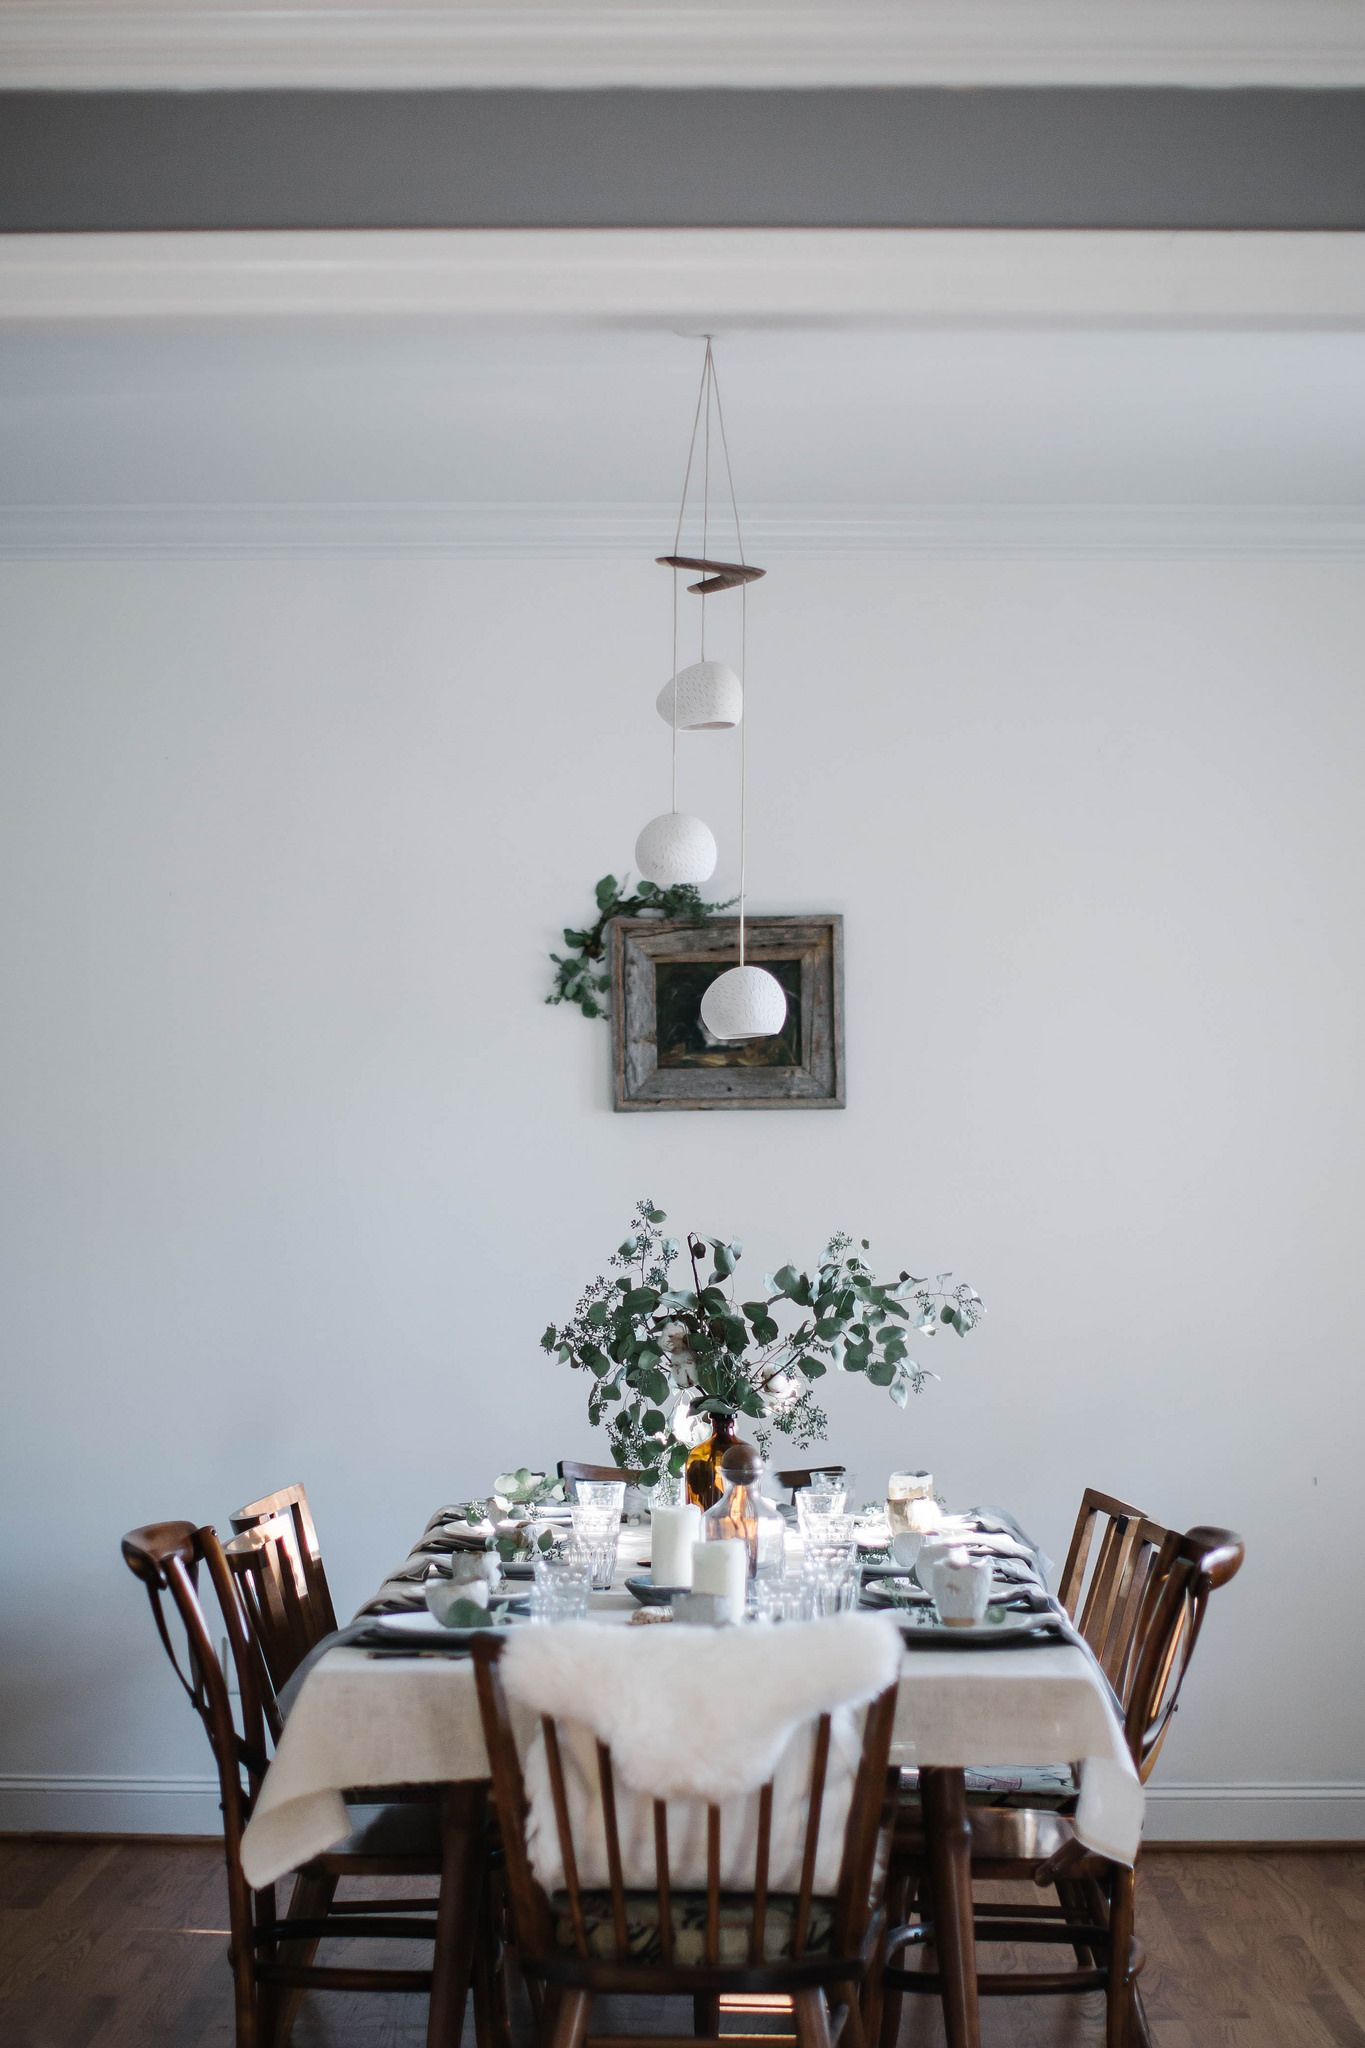 https://flic.kr/p/qf5NPK | christmas gathering: setting the table